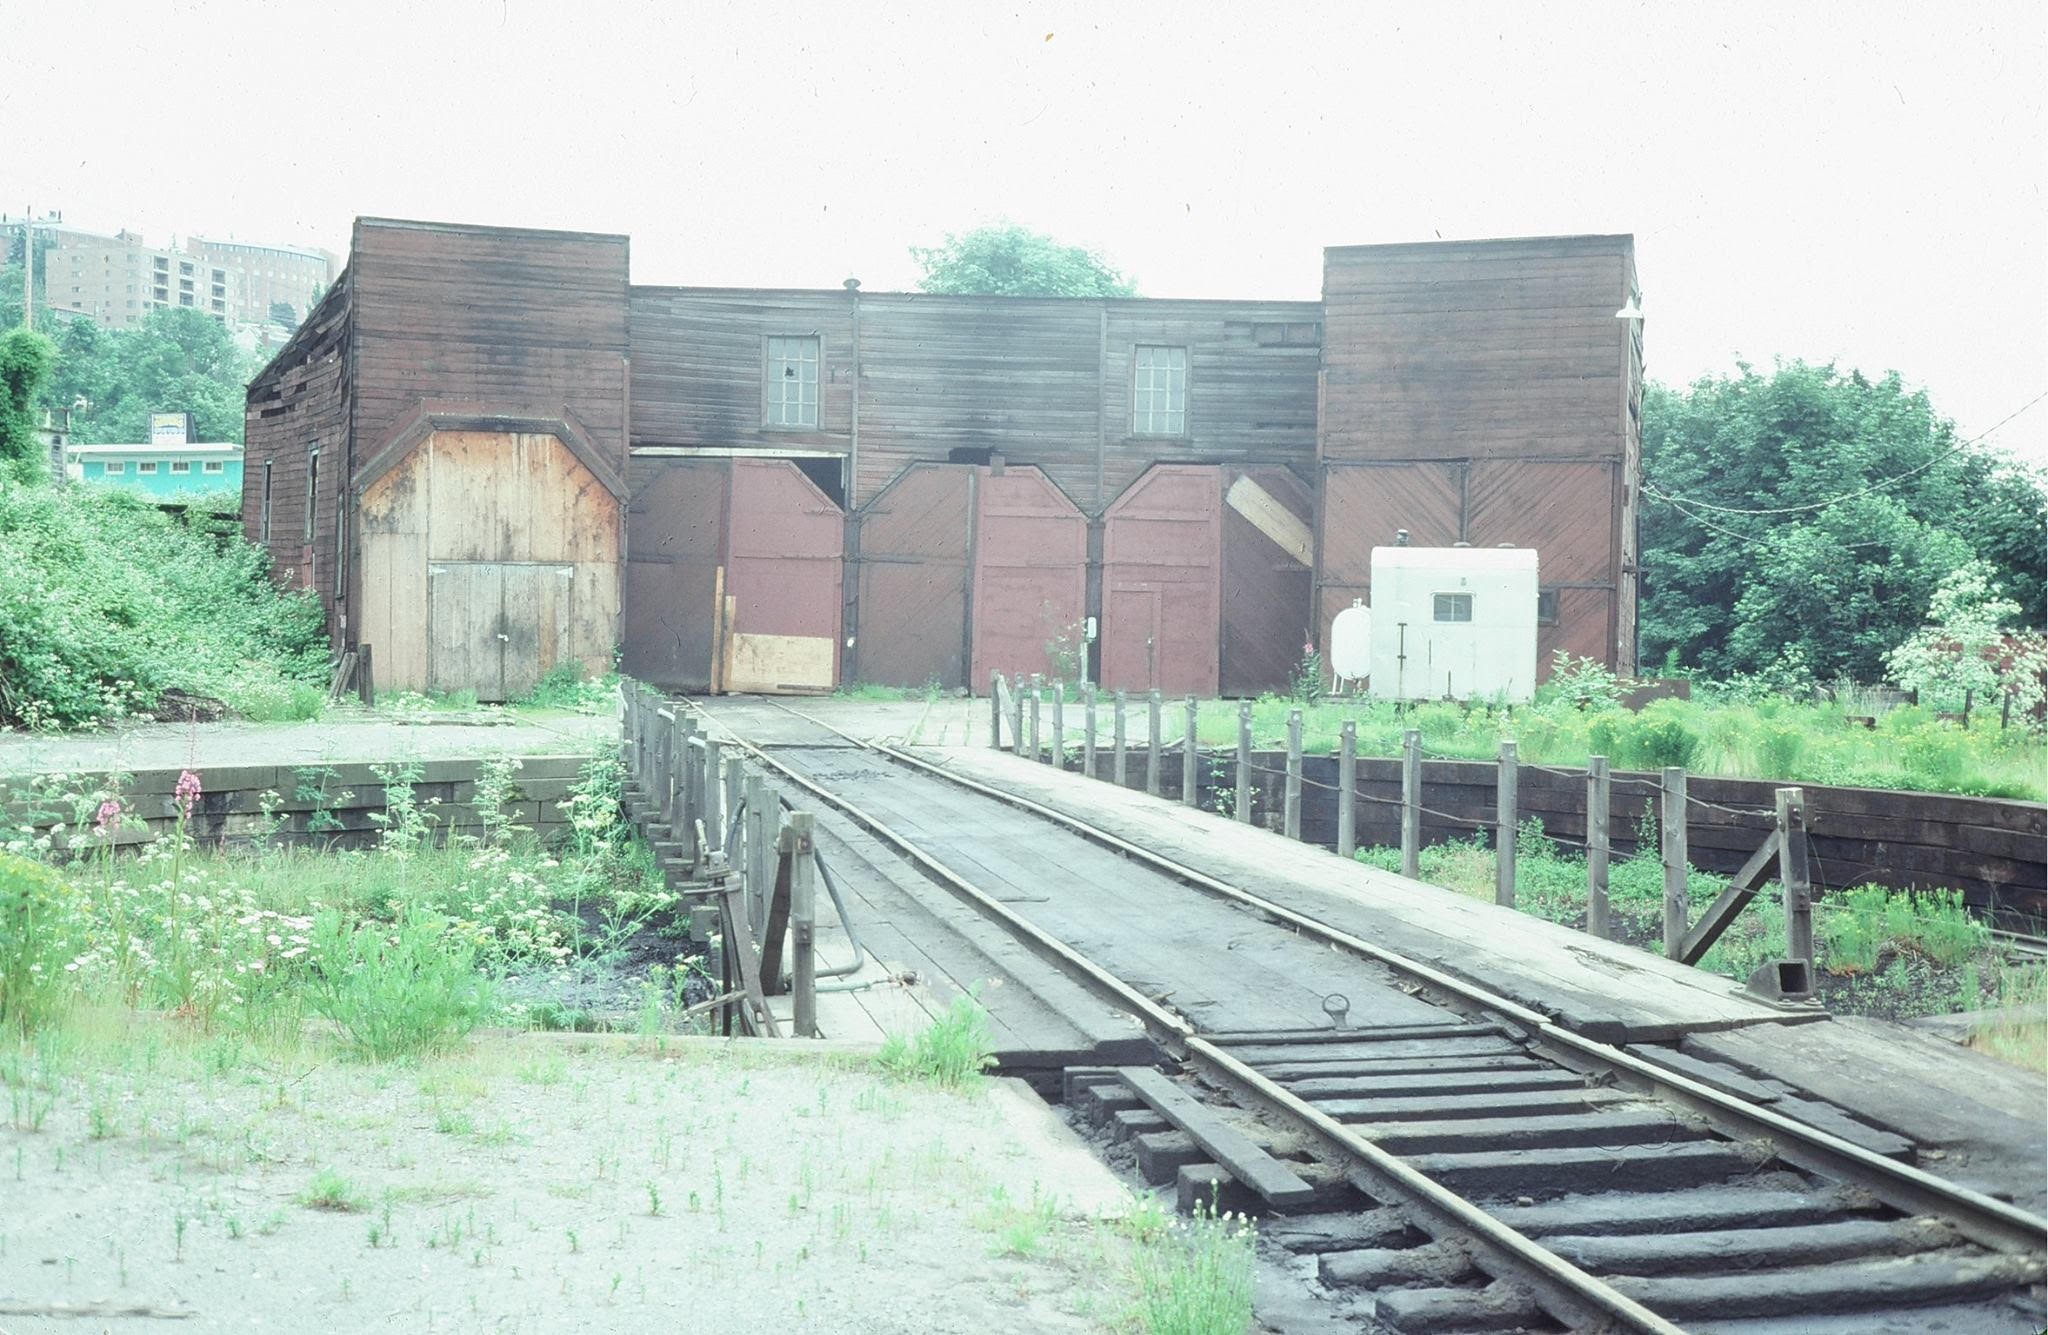 An image of the boarded up roundhouse with turntable in the foreground